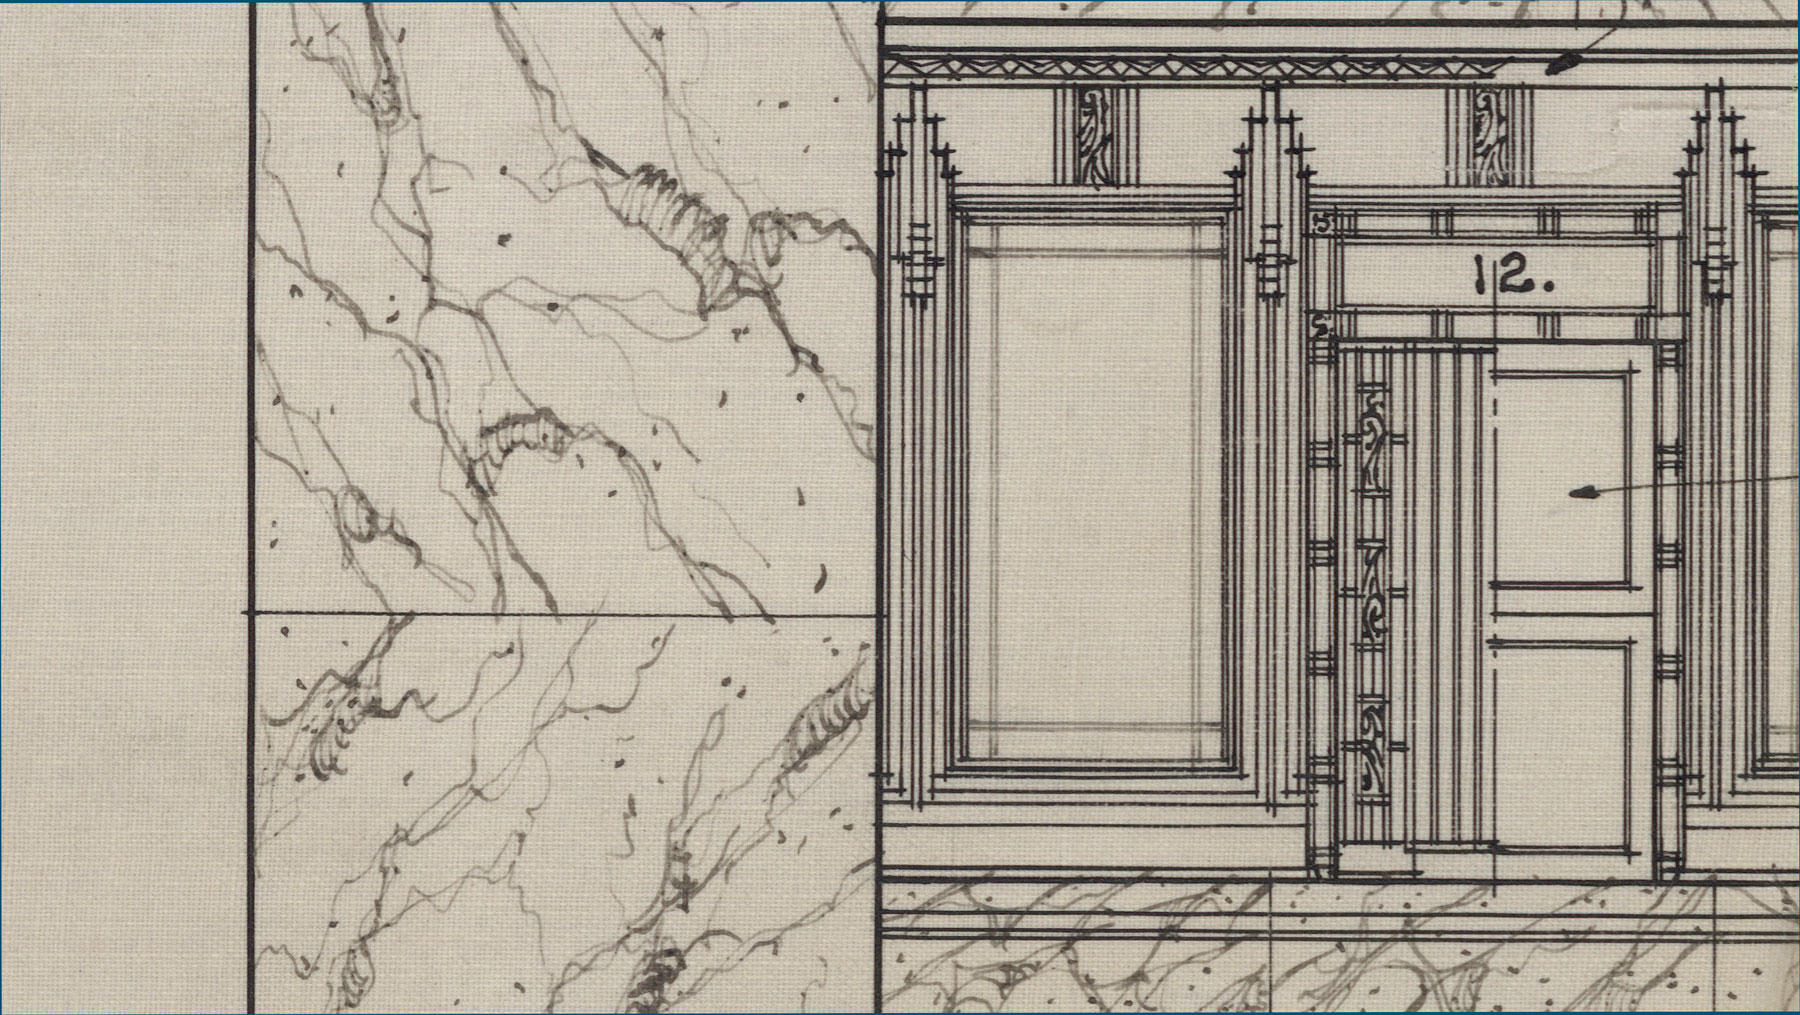 The Dominion Public Building: The Architectural Drawings - Details of Public Areas